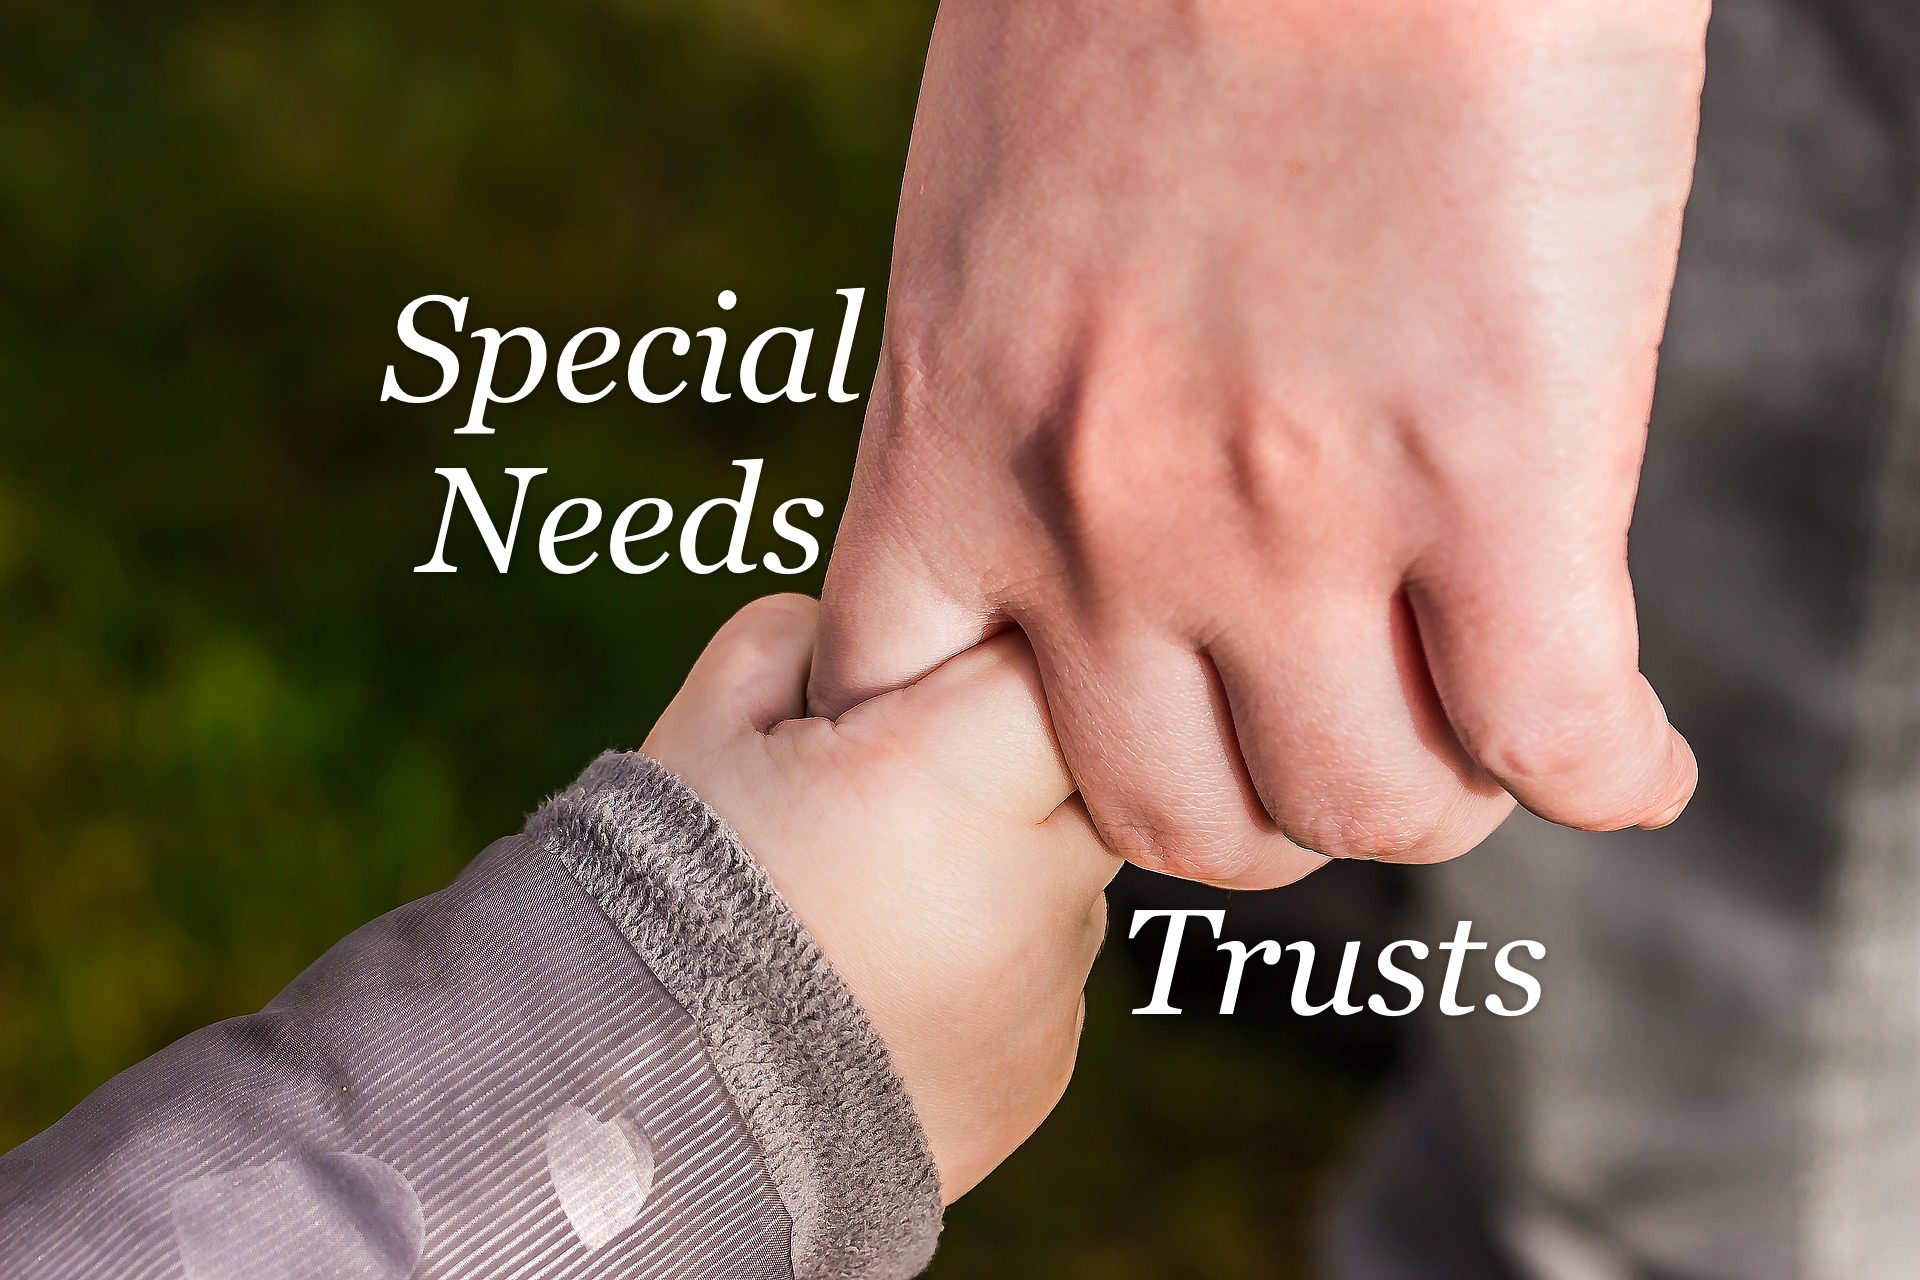 Special Needs Trust | The Special Parent